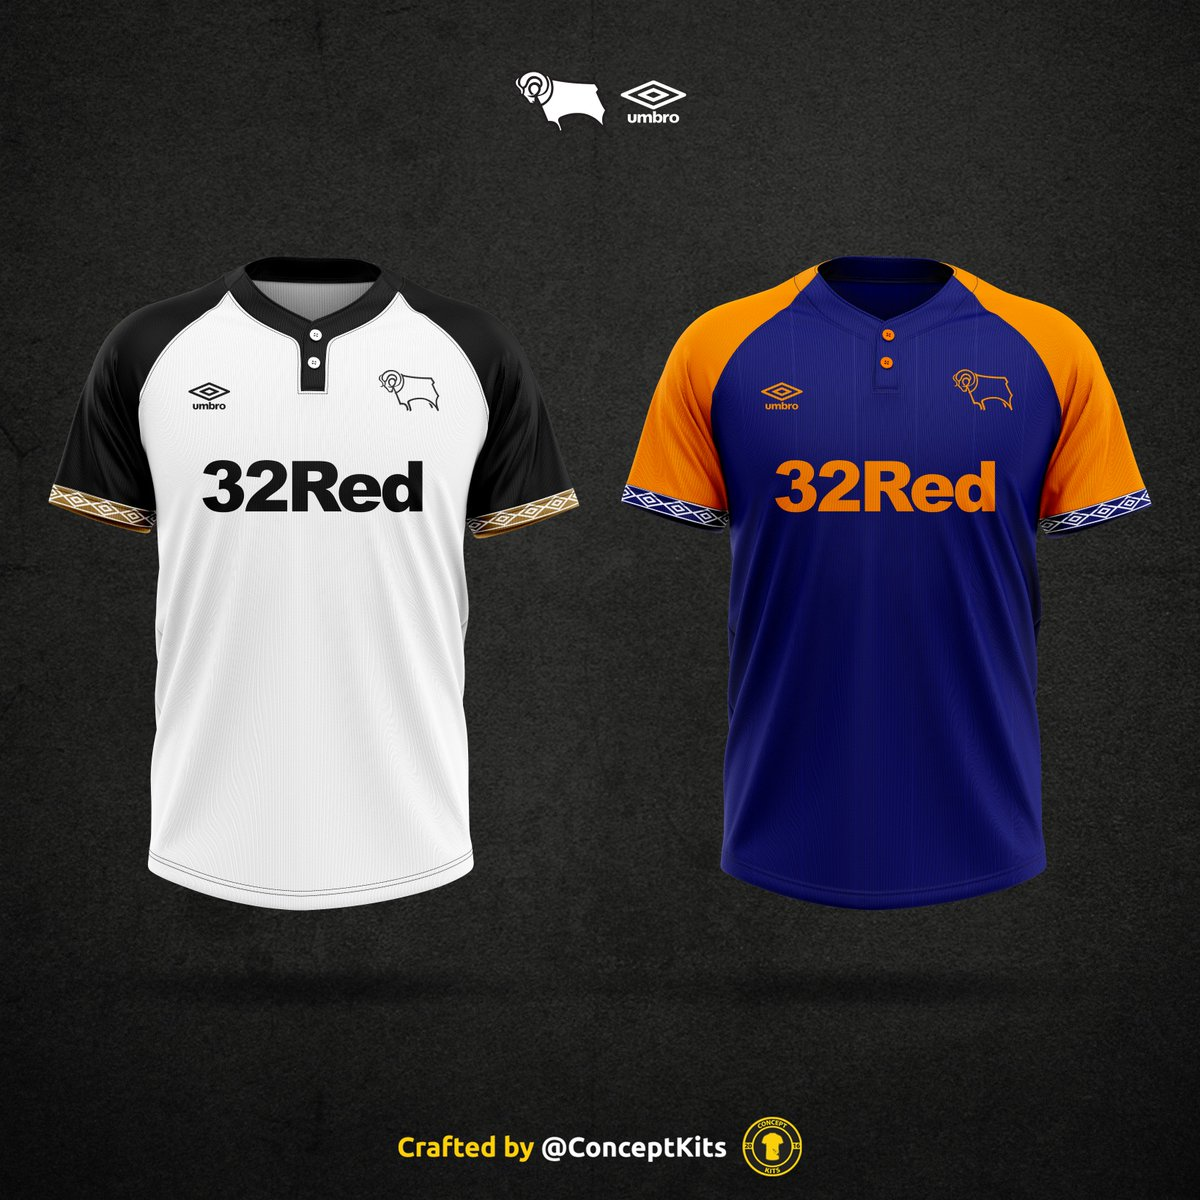 Concept Kits On Twitter Derby County Football Club Home And Away Kit Concepts For The 2019 20 Season Dcfc Derby Rams Derbycounty Umbro Pridepark Therams Kitdesign Conceptkits Https T Co Ycs20tppm6